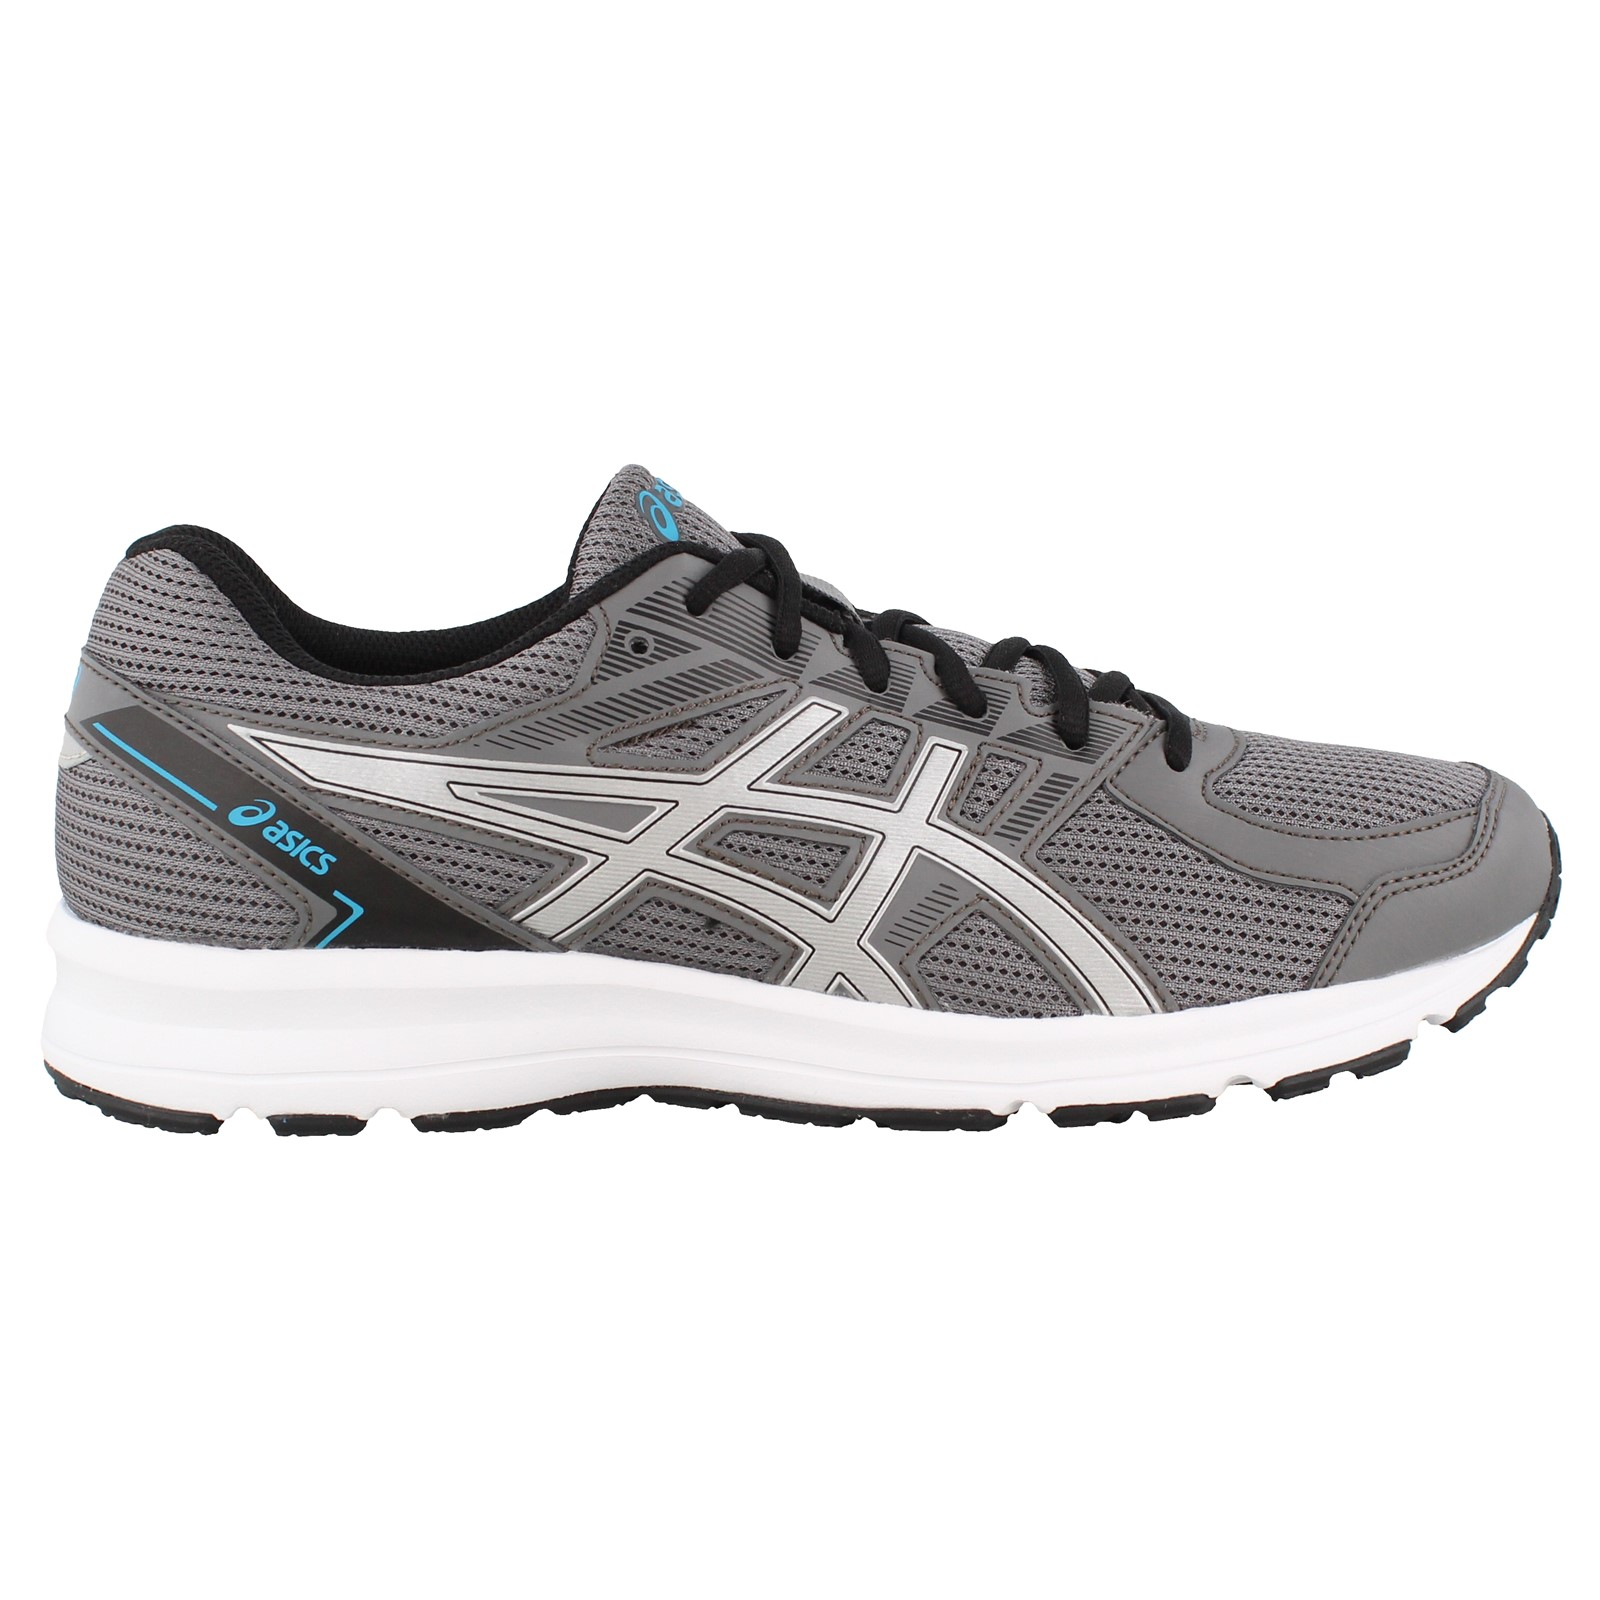 Men's ASICS, JOLT RUNNING SNEAKERS